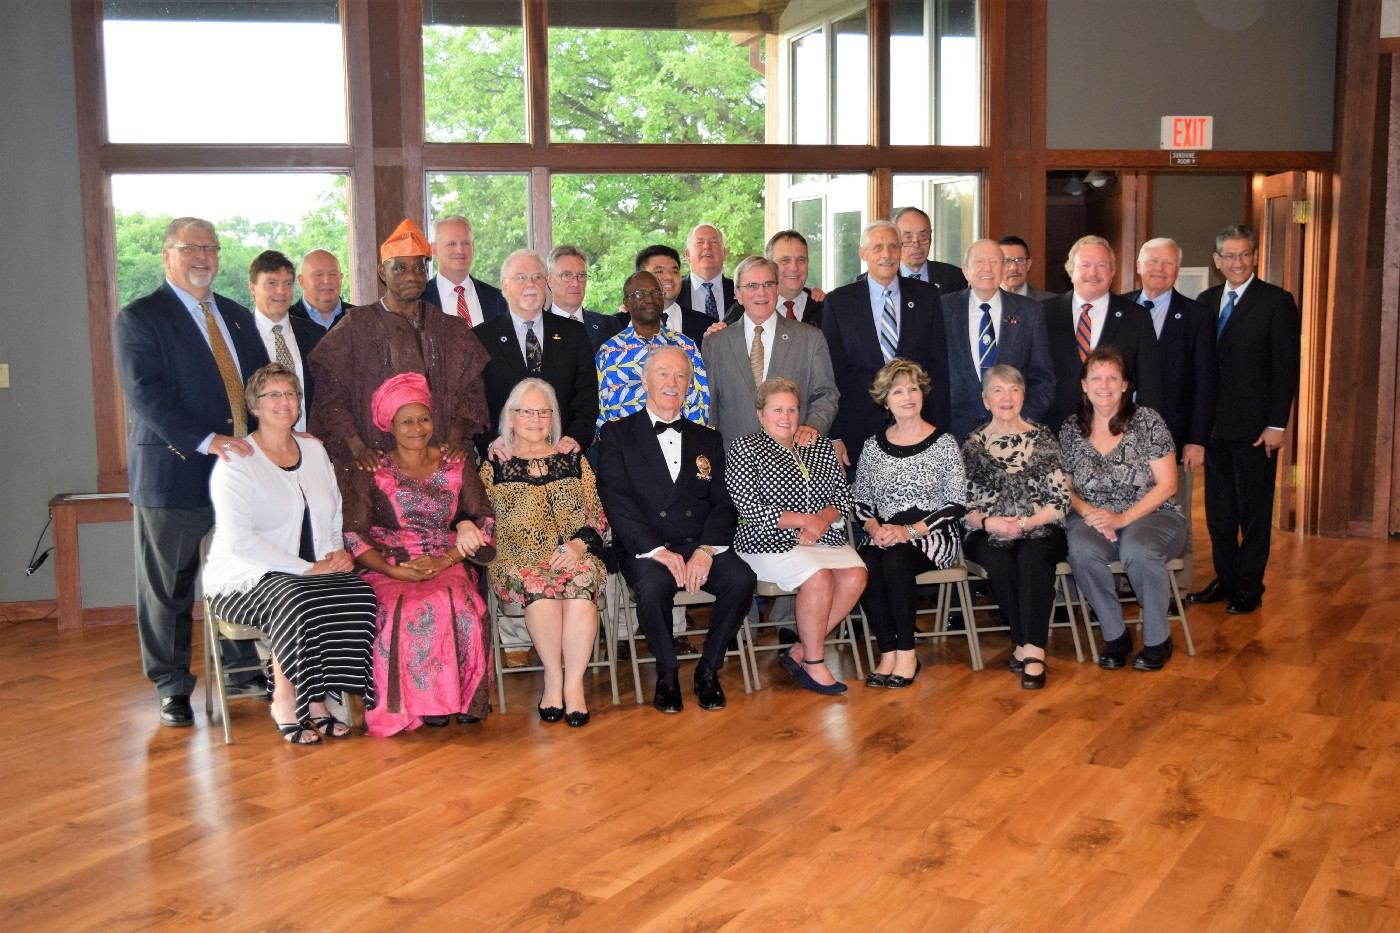 Pointman Leadership Institute and Principle Based Leaders from around the World